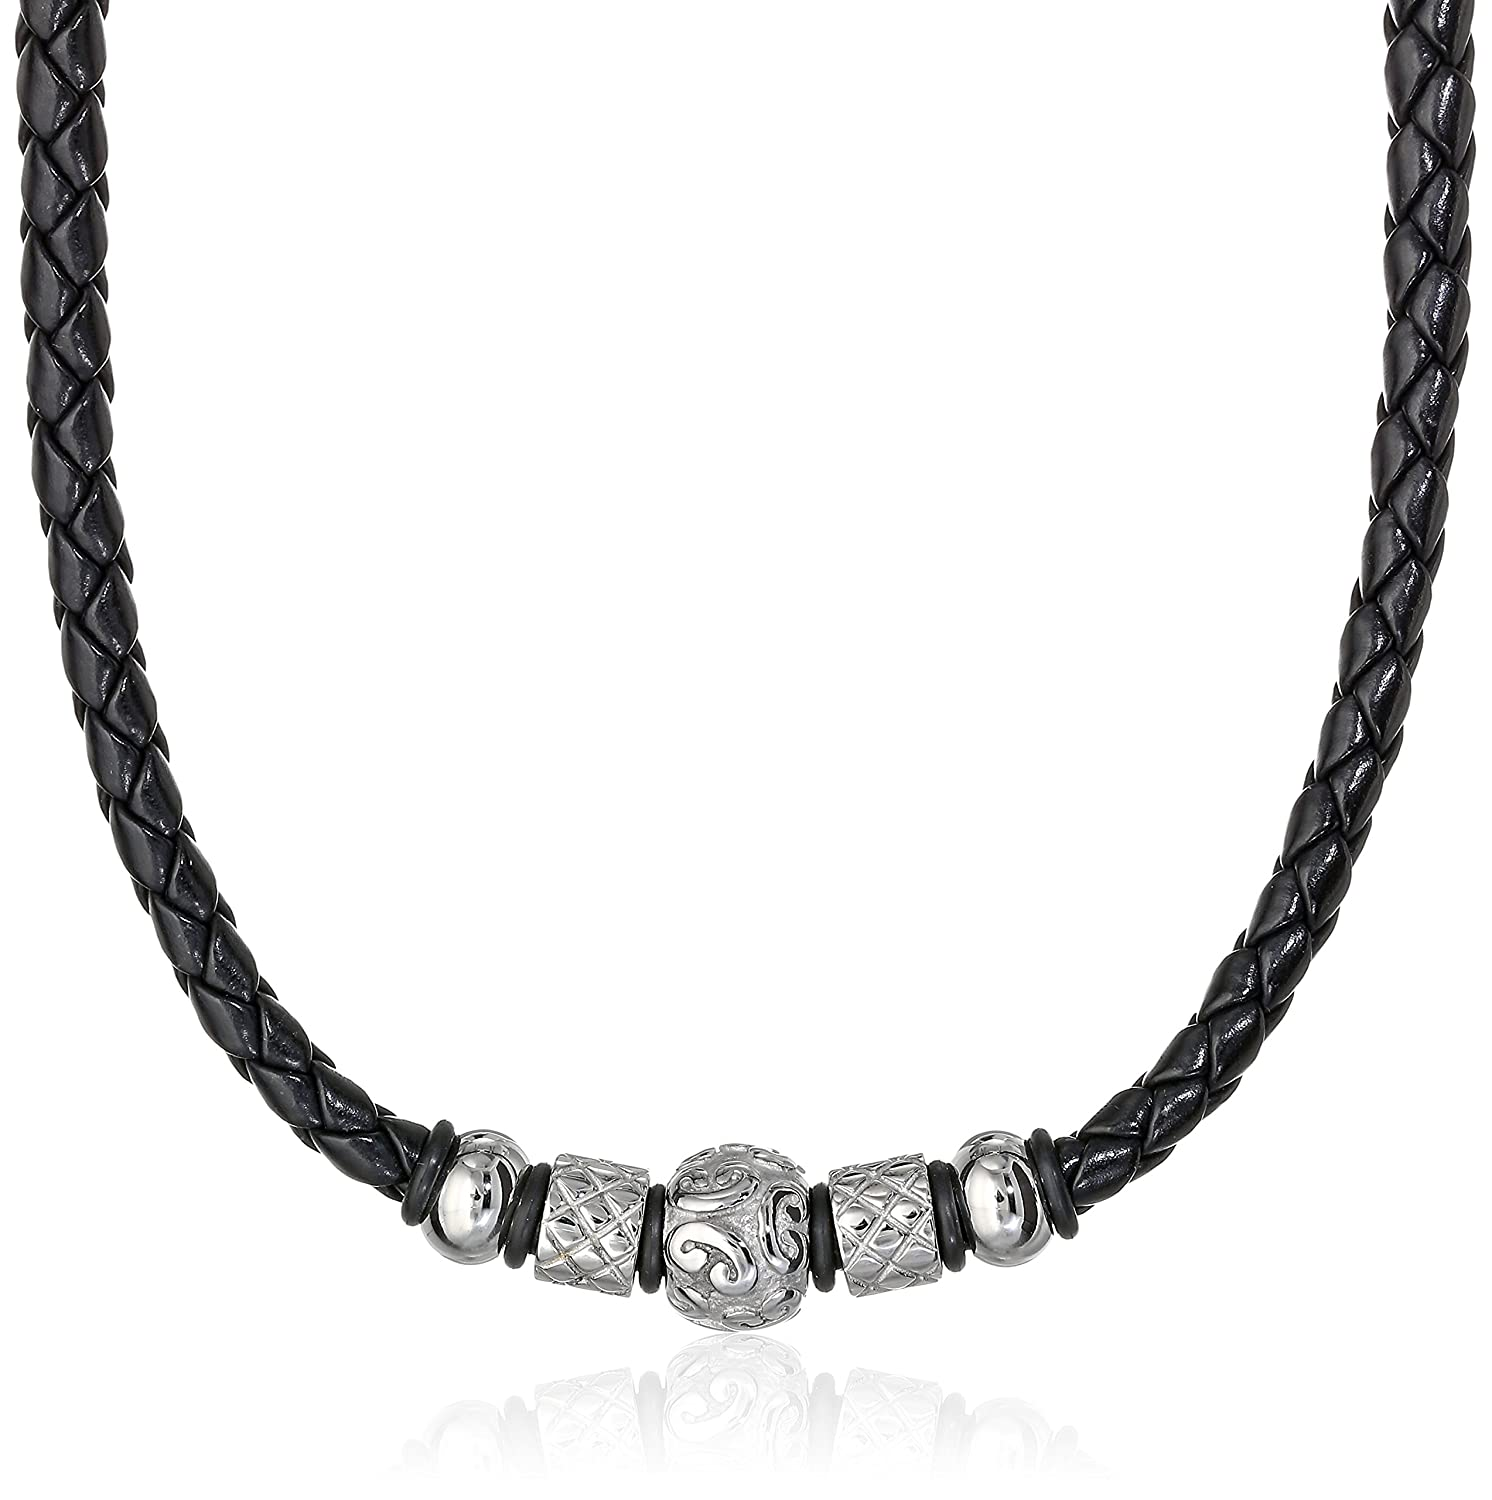 Cold Steel Men's Stainless Steel Tribal Bead Black Leather Necklace, 20